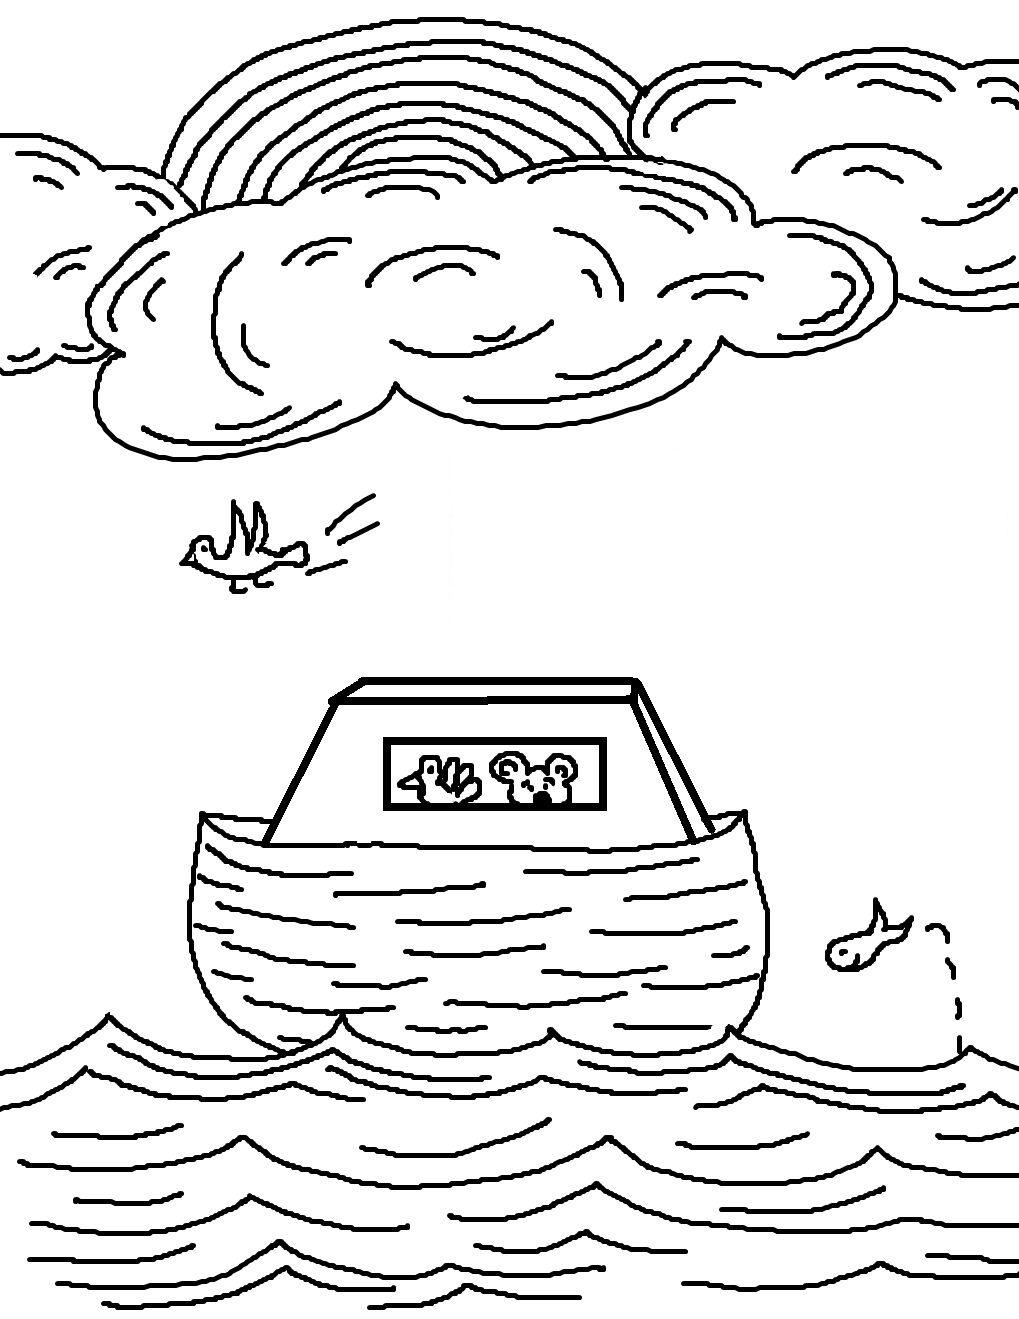 Noah's Ark Printable Coloring Pages New Coloring Pages Noah Ark ... | 1319x1019